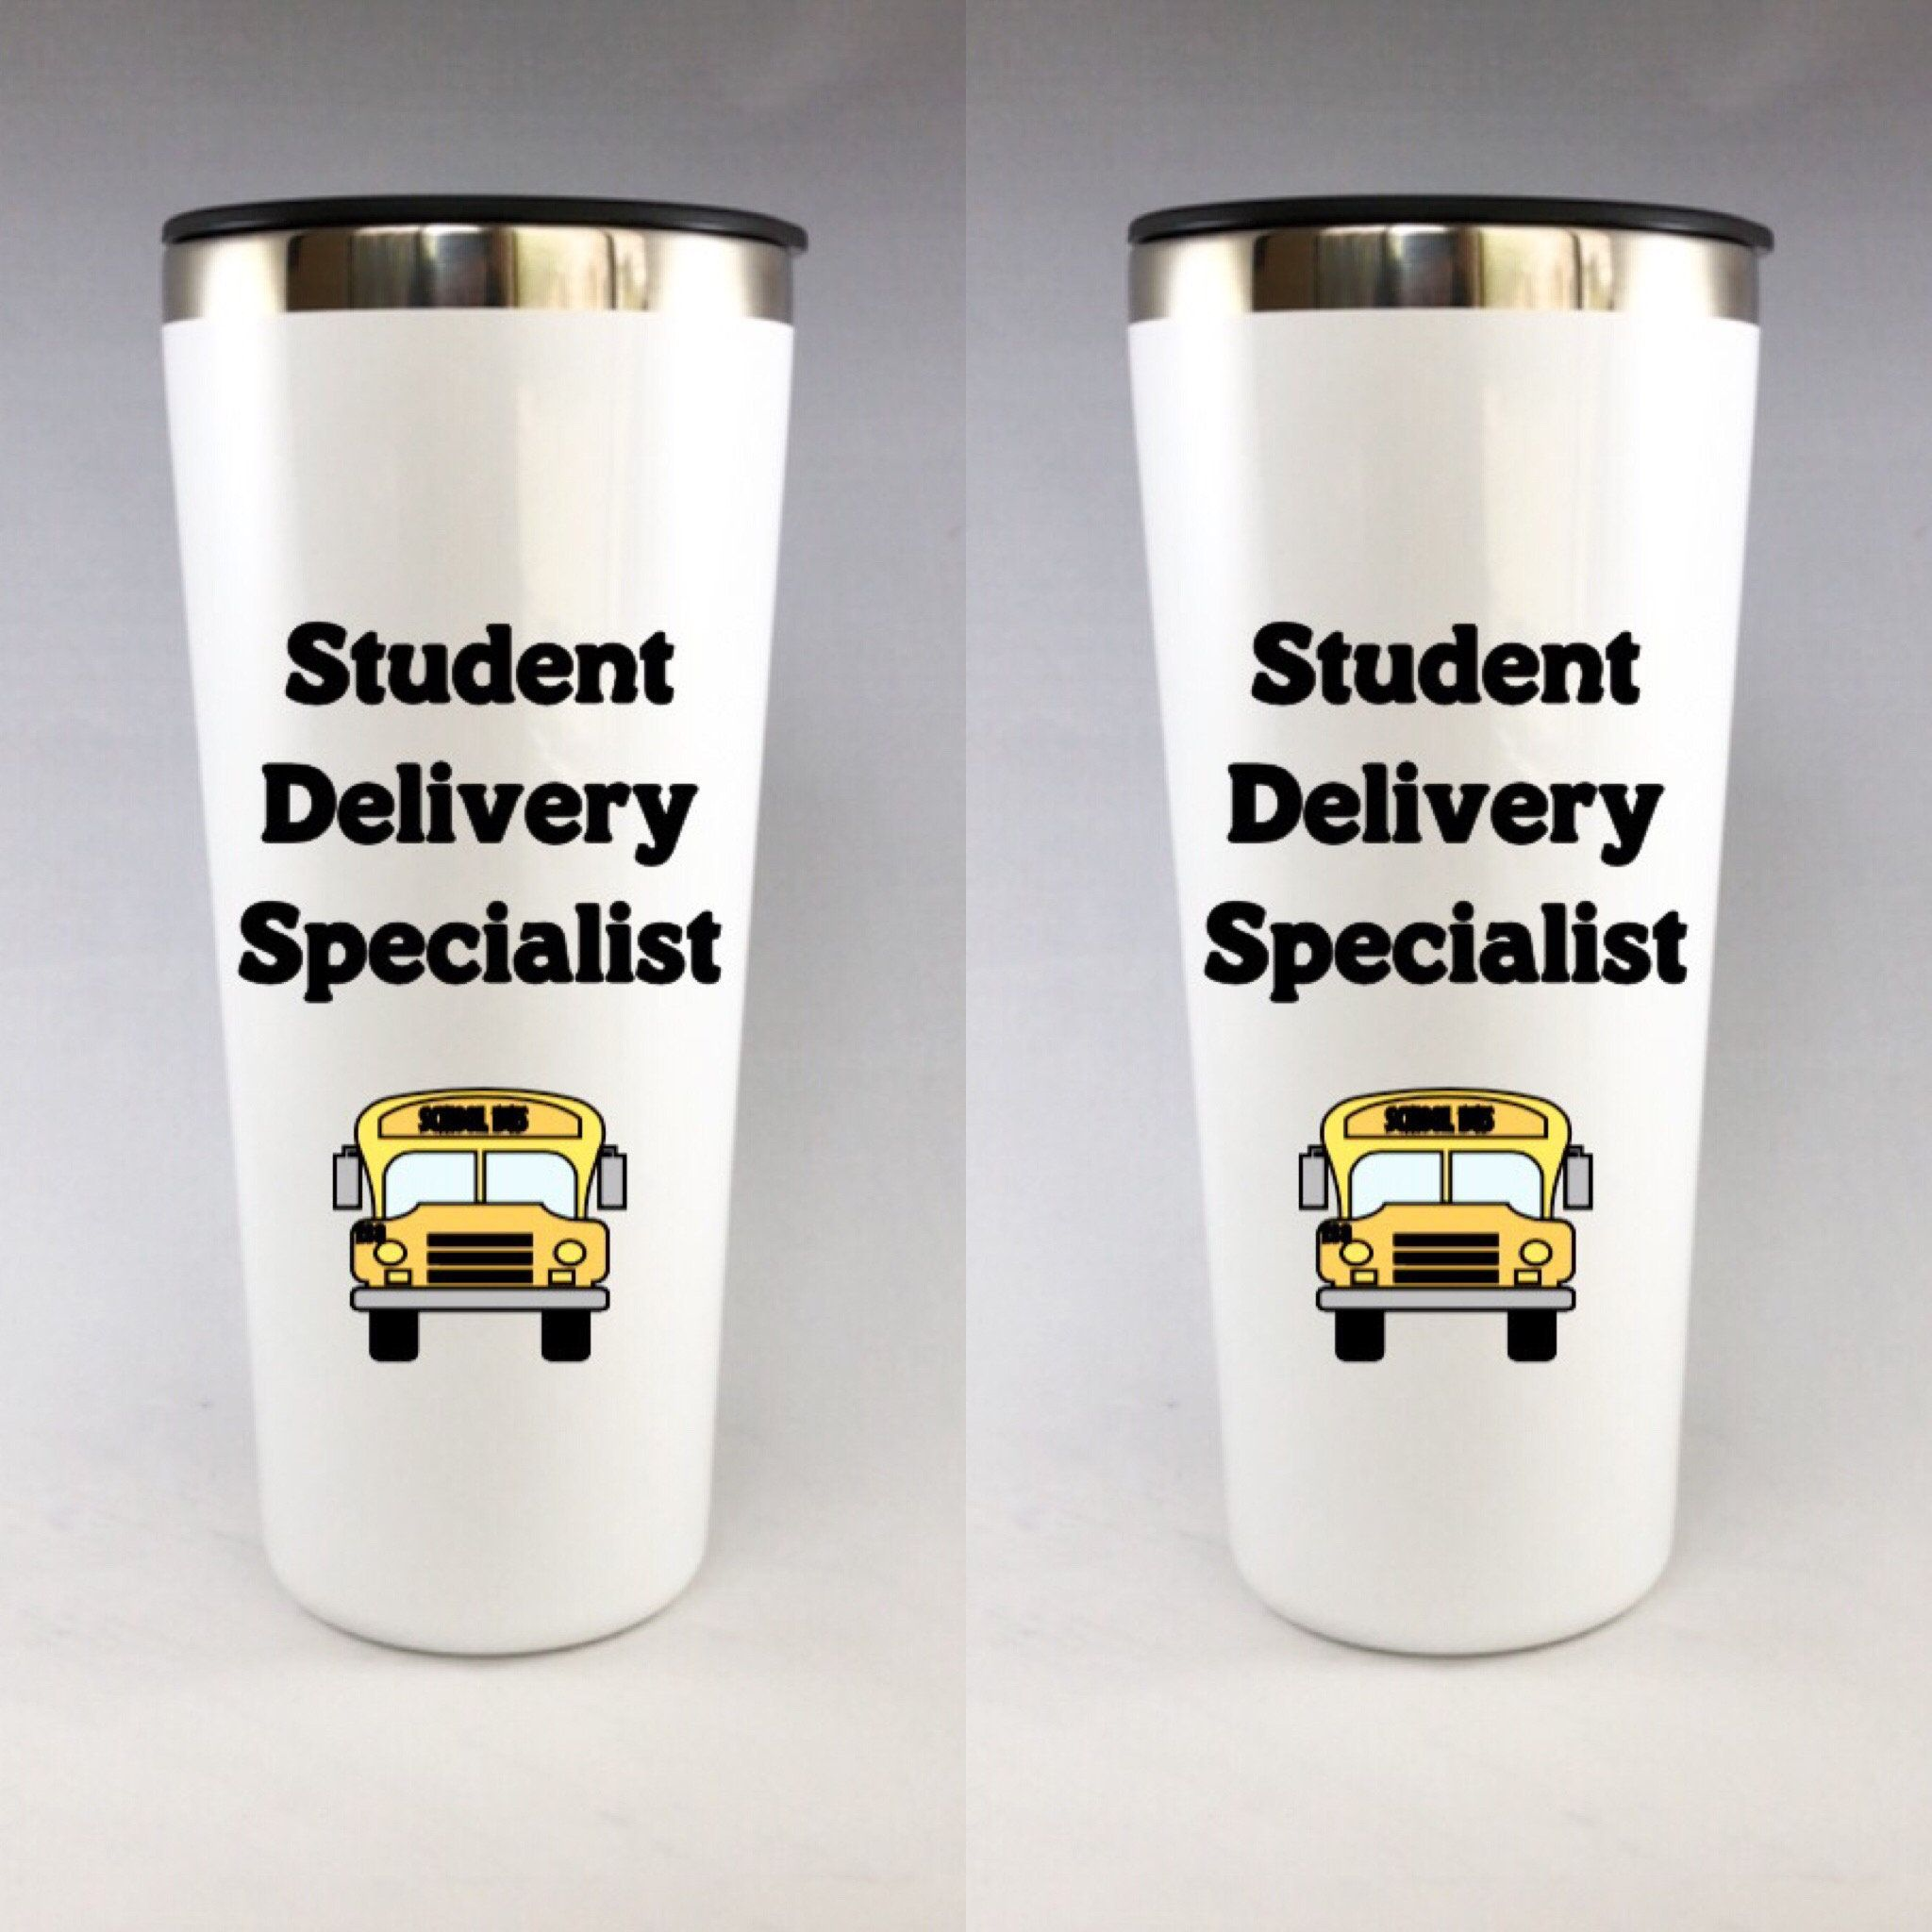 Bus Driver Gift Bus Driver Tumbler Student Delivery Etsy Bus Driver Gifts Bus Driver Appreciation School Bus Driver Gift Ideas